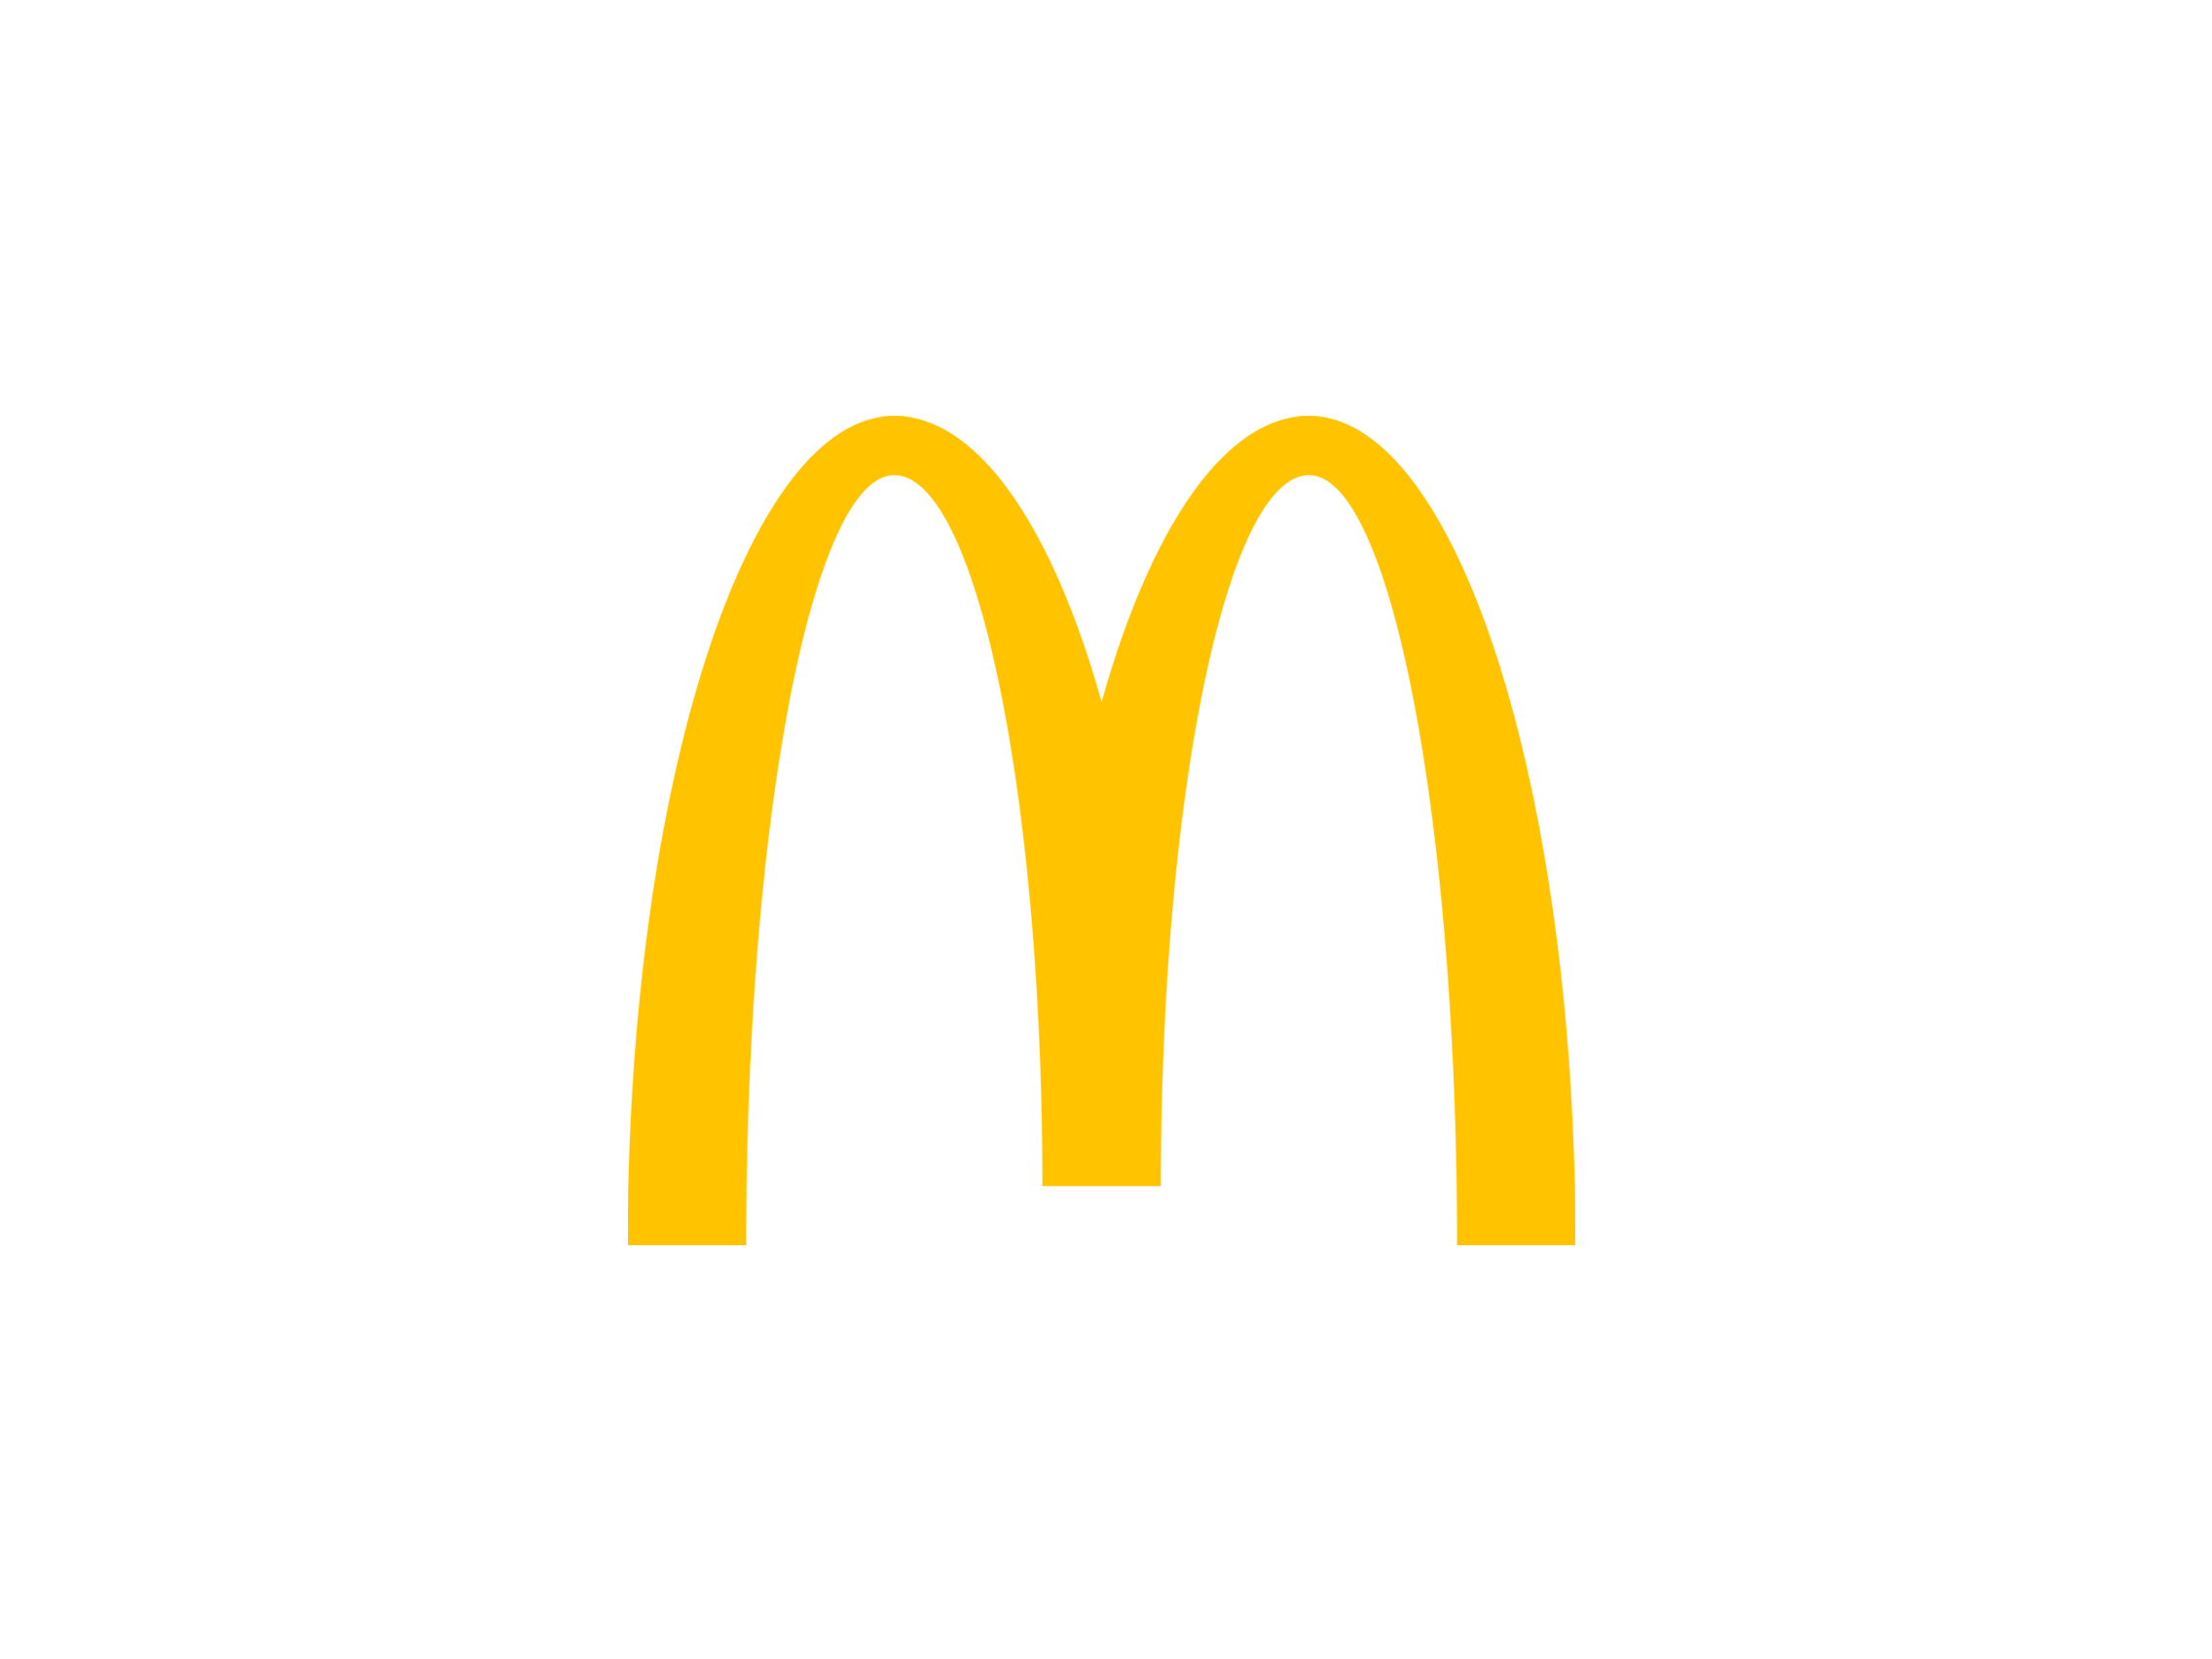 mcdonalds organization Mcdonald's corporation is in the hamburger fast-food restaurant business per the corporate website, mcdonald's brand mission is to be our customers' favorite place.